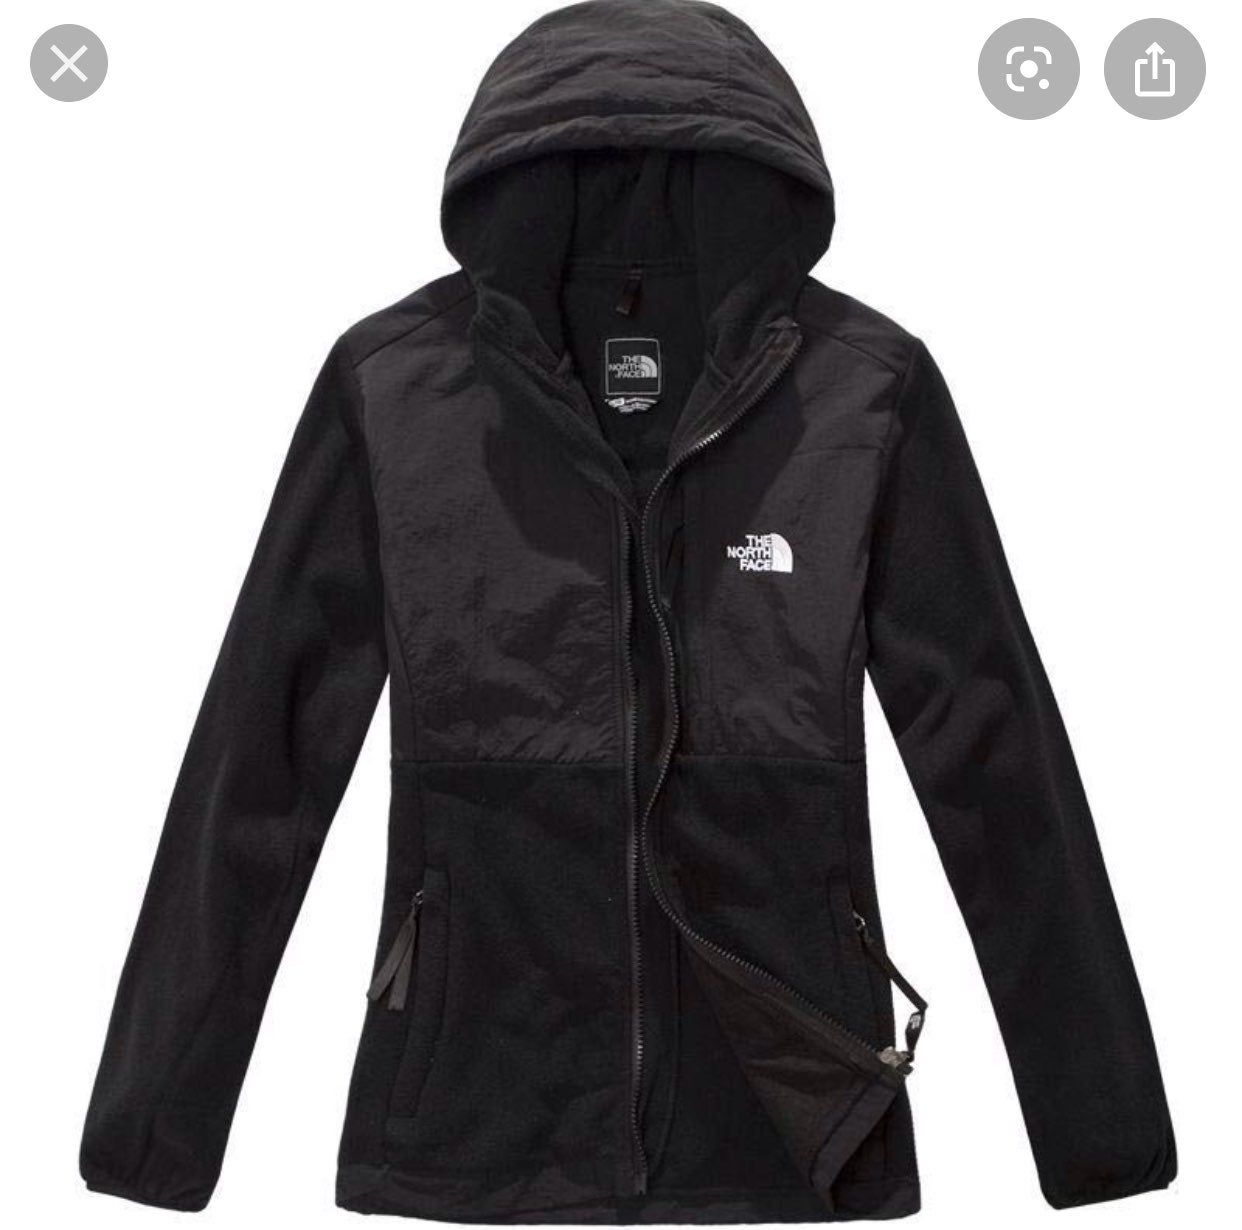 Black Size Xl Women S Northface Jacket With Hoodie All Zippers Work One Of The Zippers Has A Small Tear Hoodie Jacket Women North Face Jacket North Face Women [ 1230 x 1242 Pixel ]